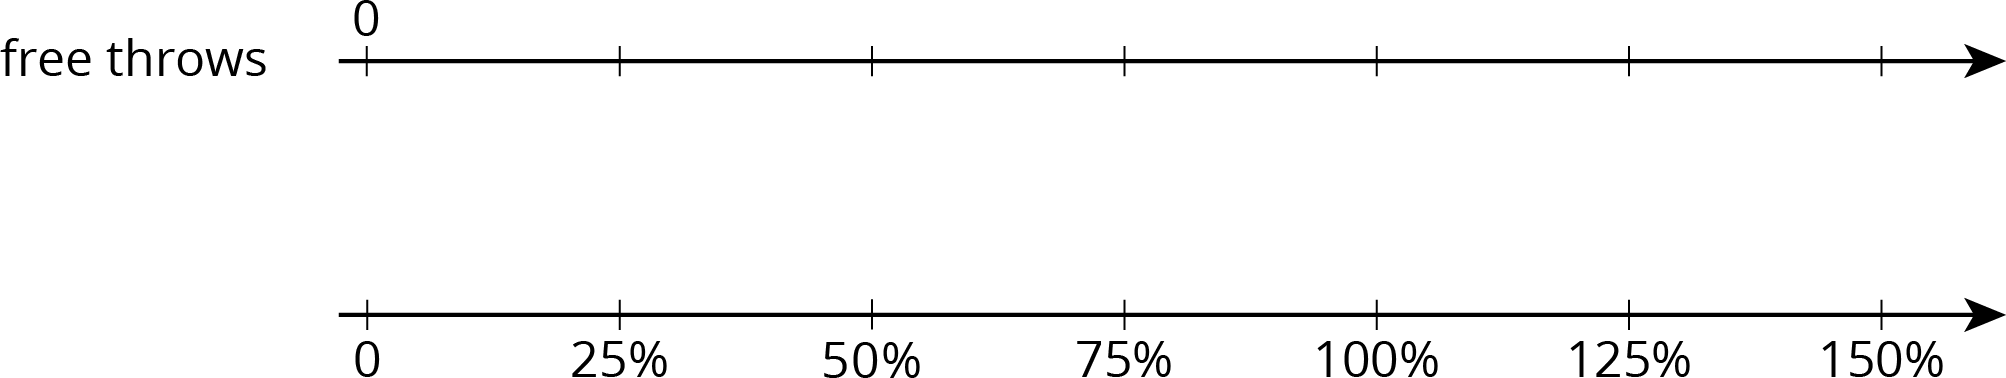 """A double number line with 7 evenly spaced tick marks. The top number line is labeled """"free throws"""" and the first tick mark is labeled 0. The other tick marks are unlabeled. The bottom number line is not labeled and starting with the first tick mark 0, 25 percent, 50 percent, 75 percent, 100 percent, 125 percent, and 150 percent are labeled."""